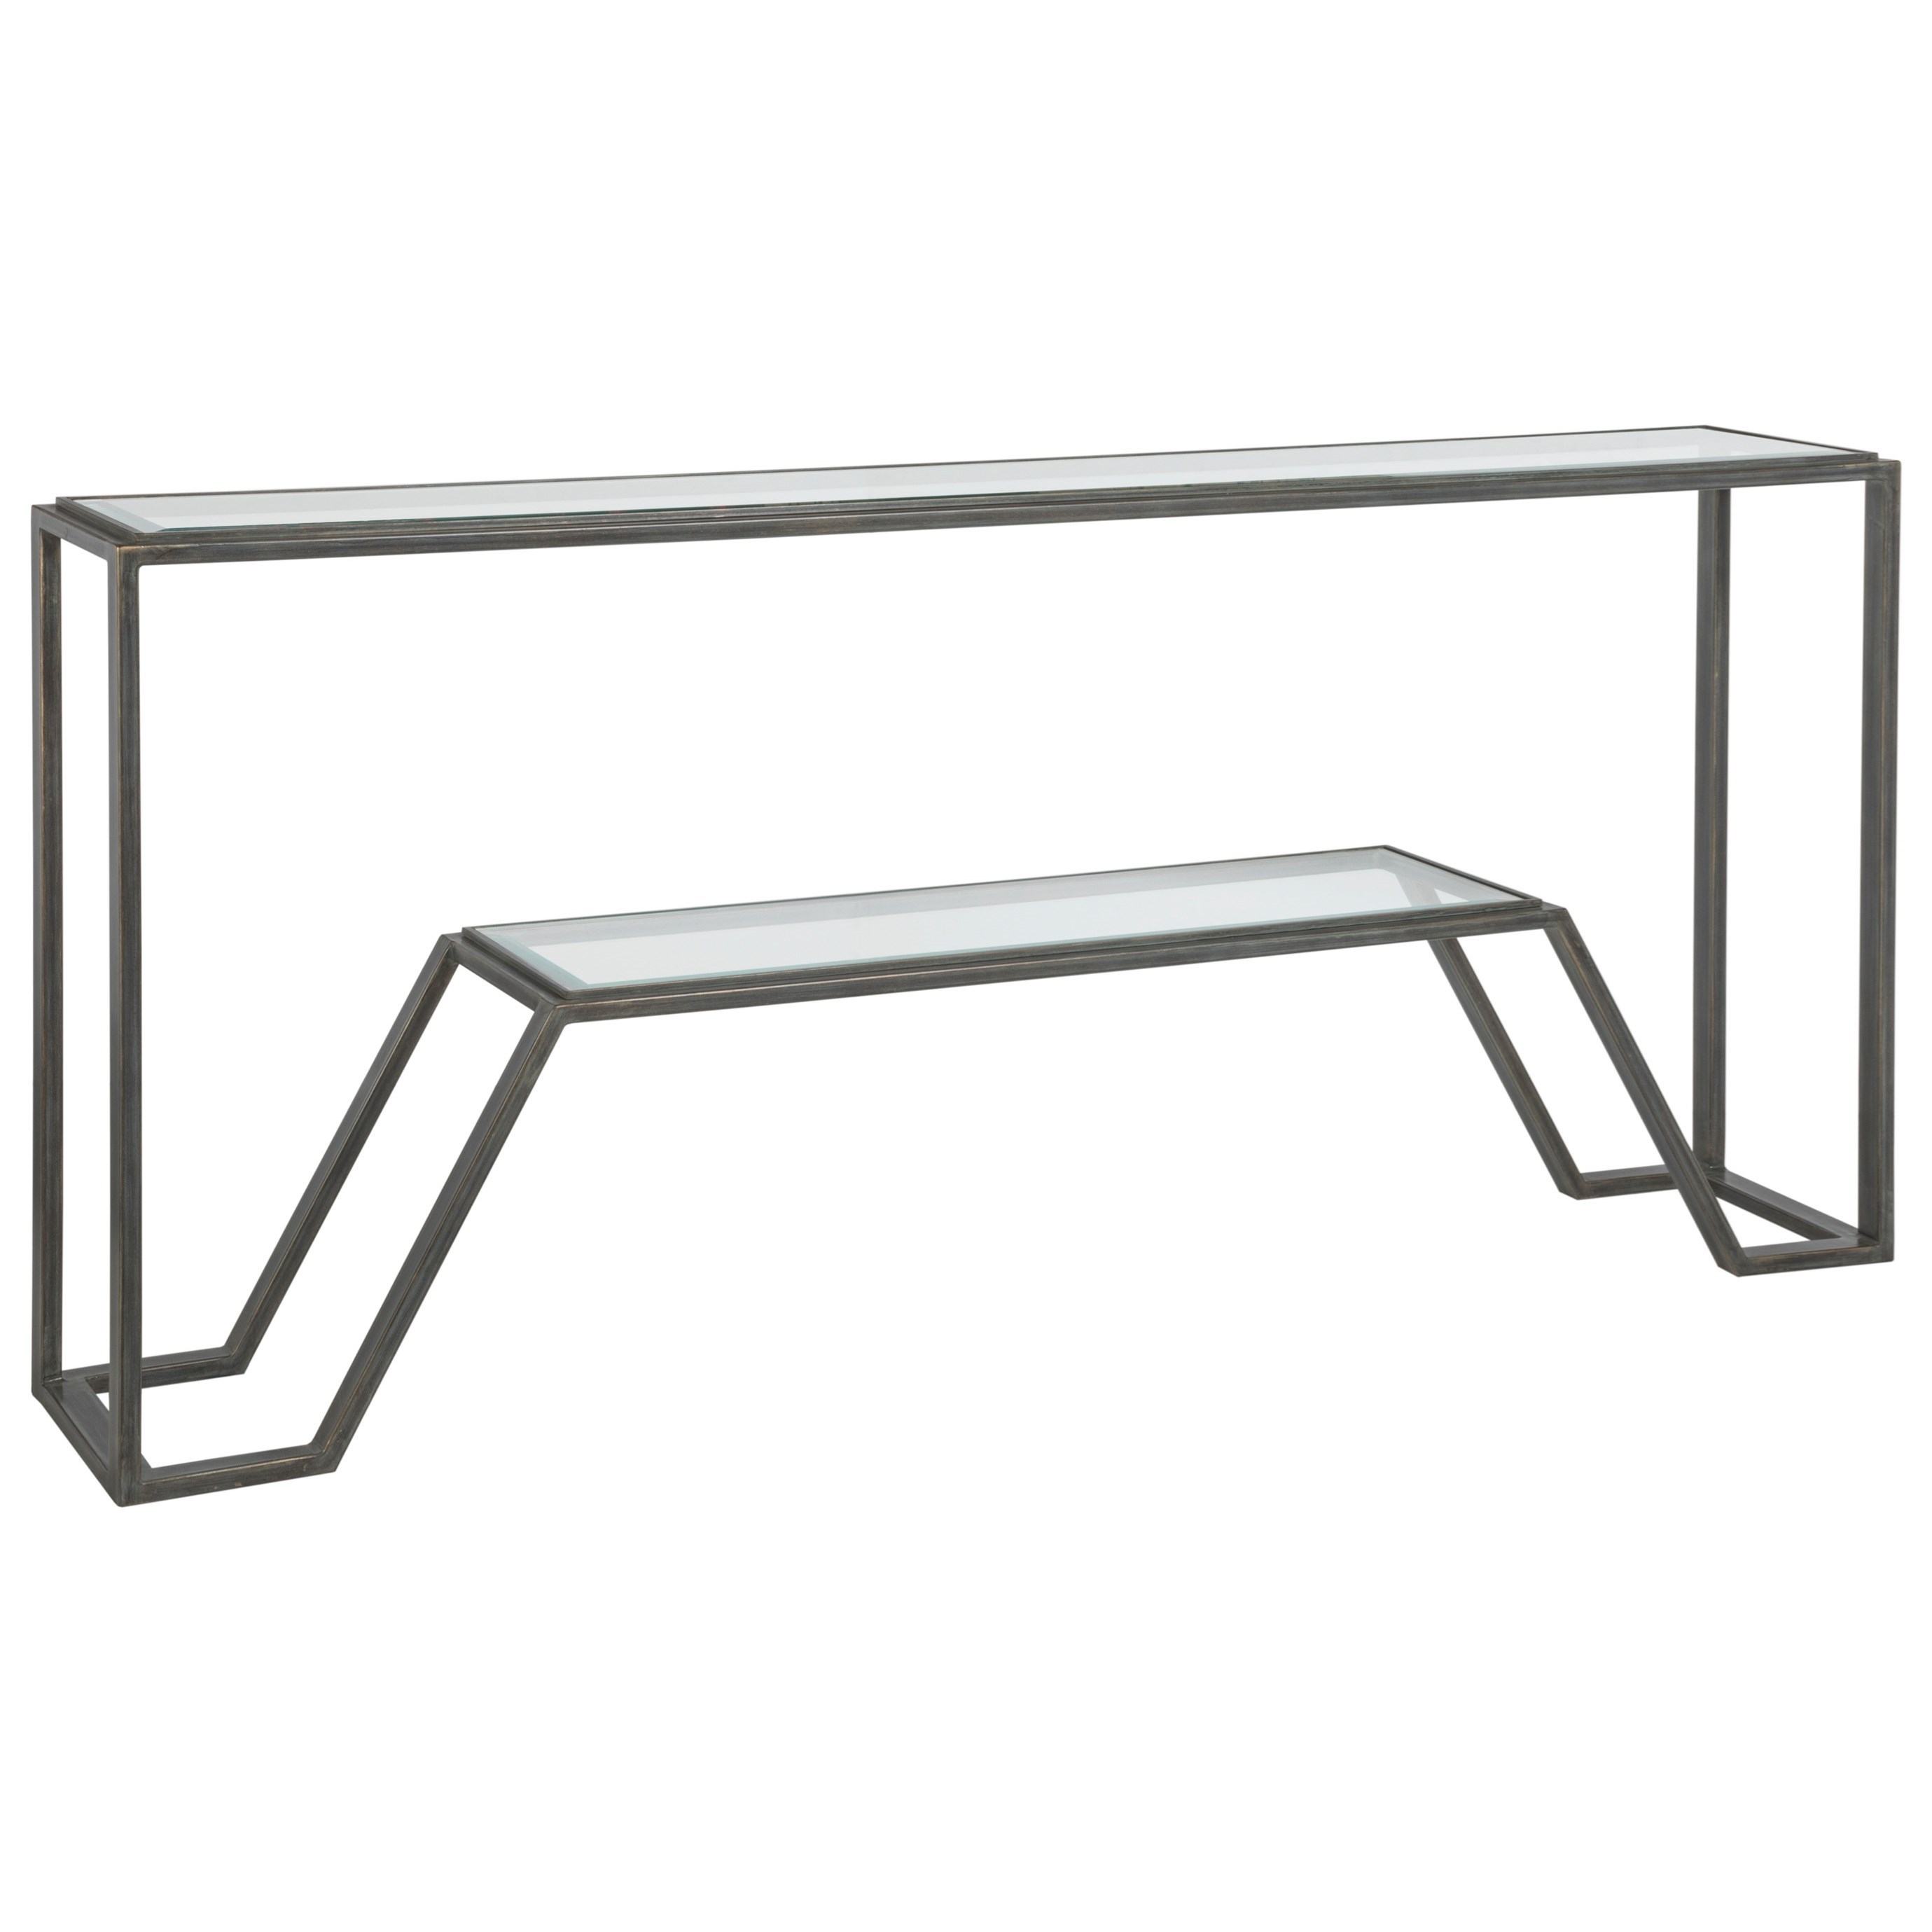 Artistica Metal Byron Console by Artistica at Jacksonville Furniture Mart